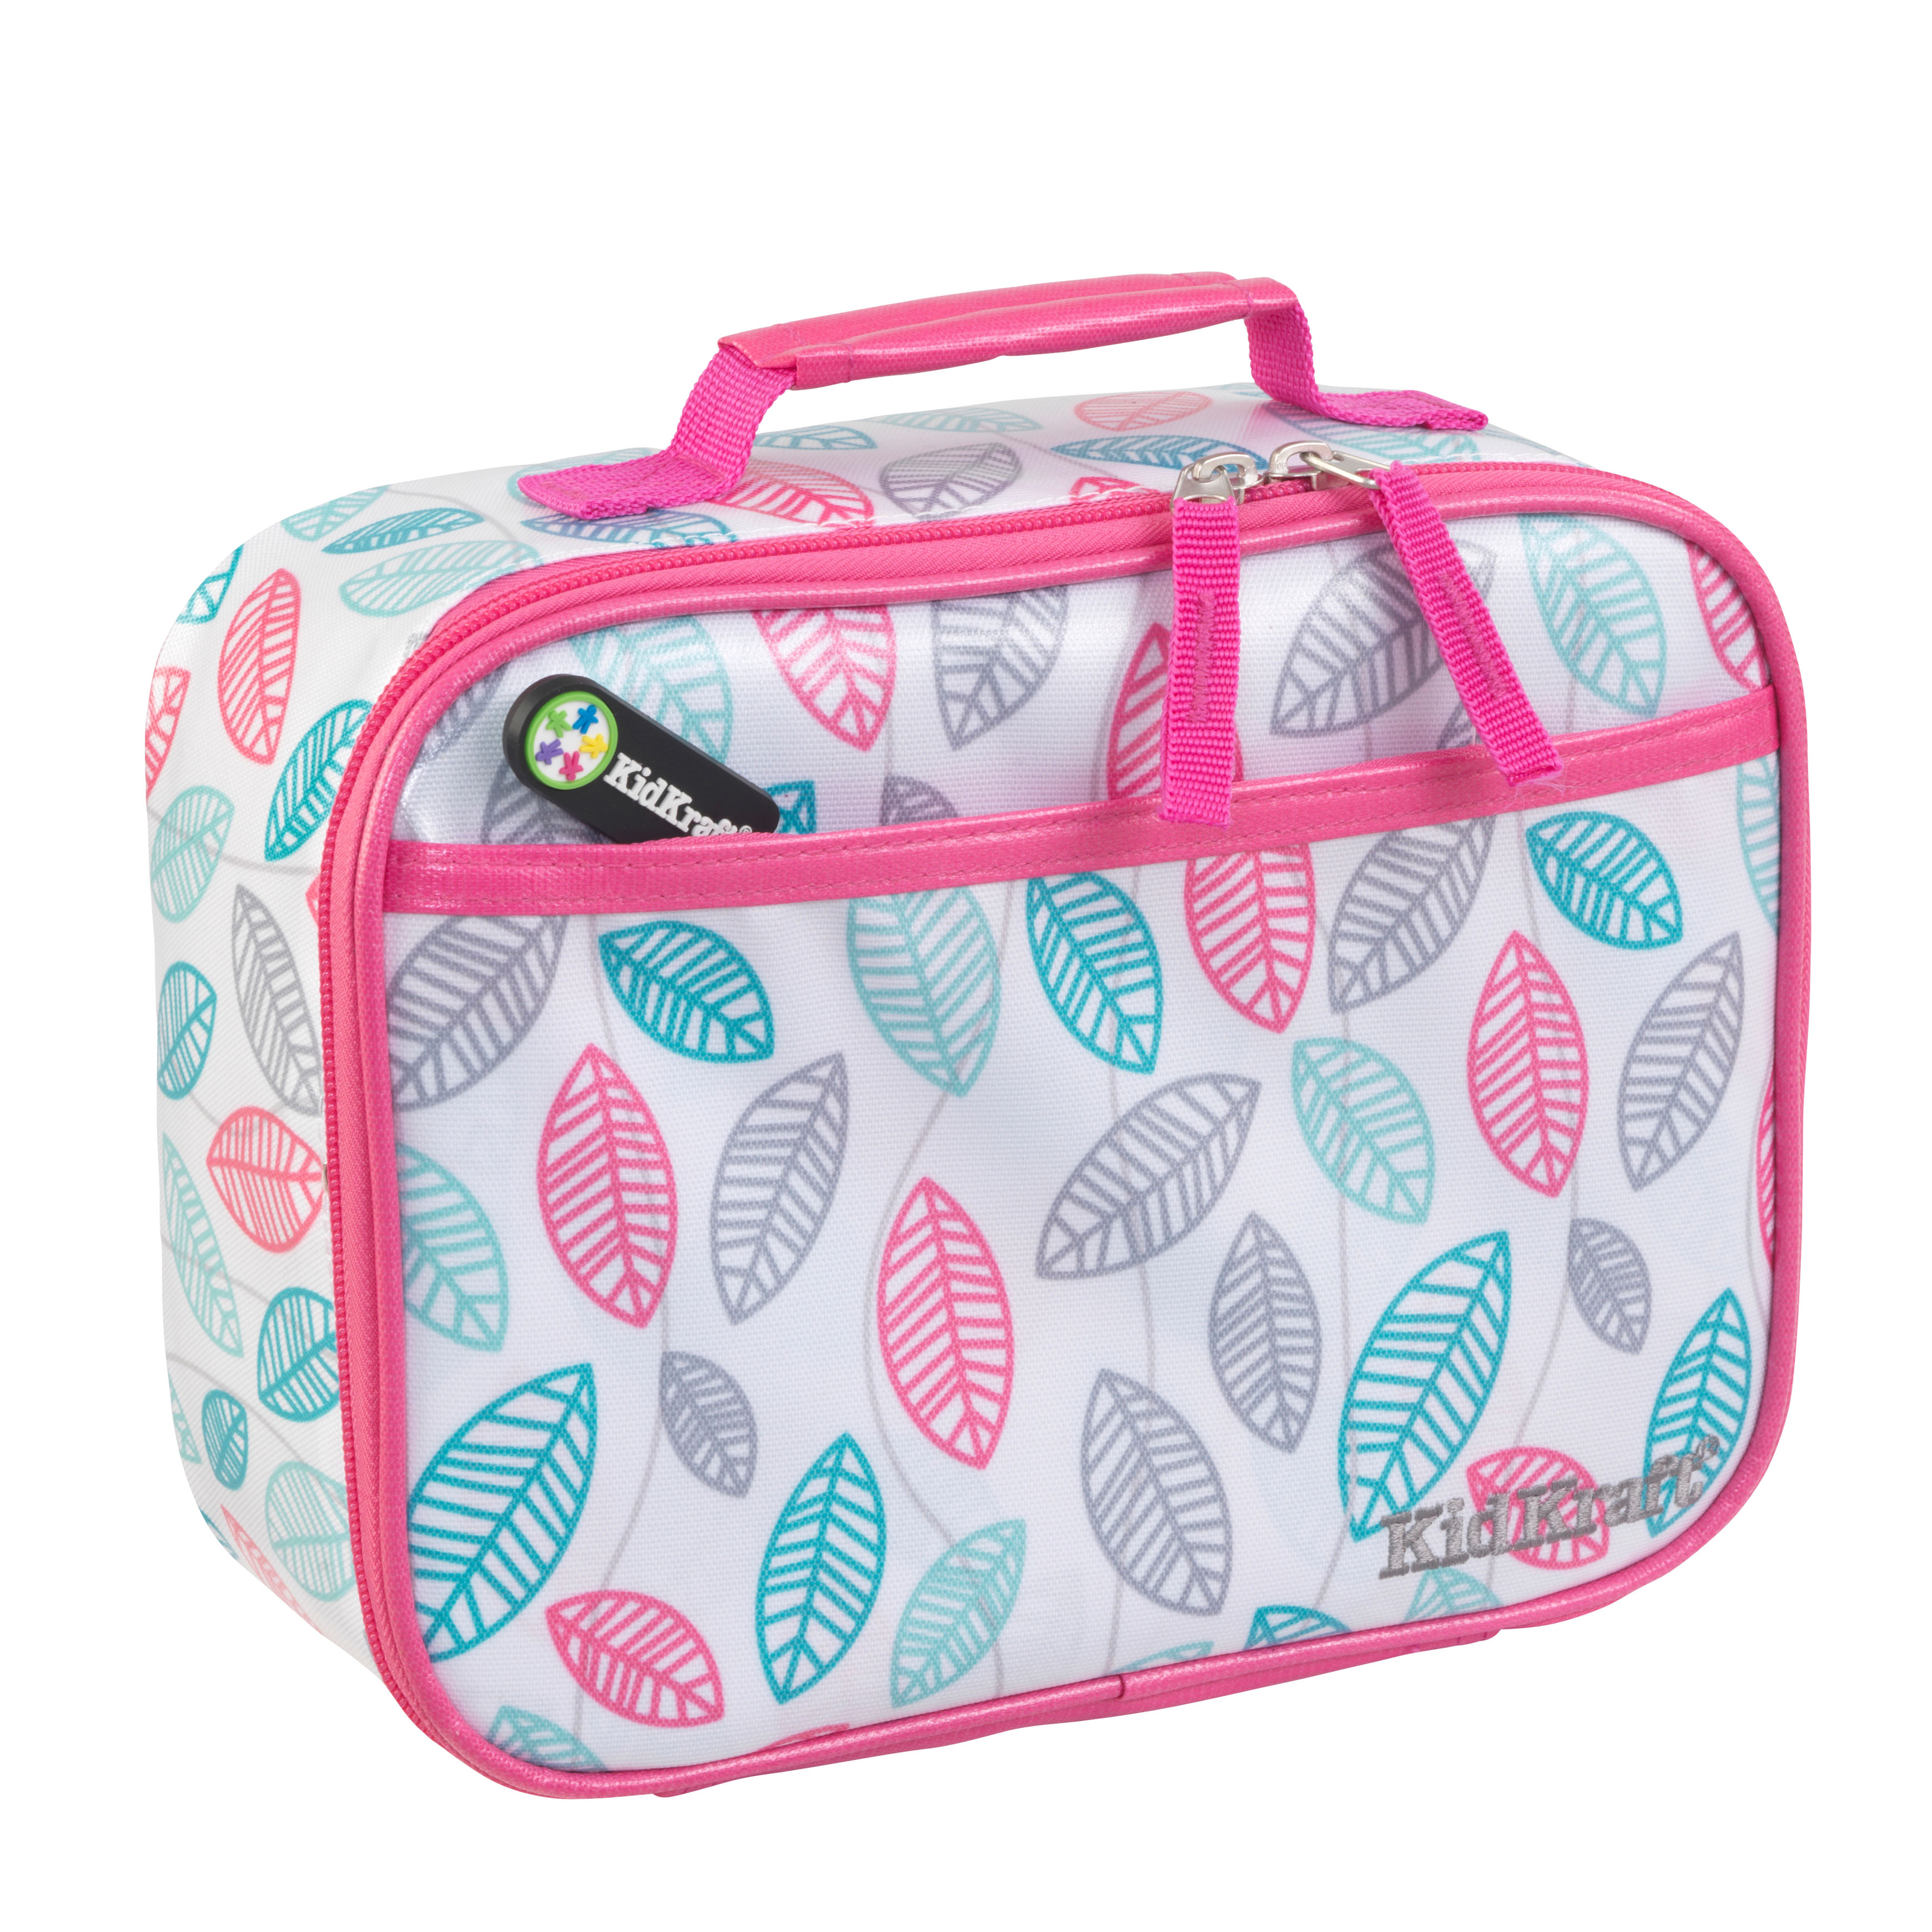 KidKraft Lunch Box - Leaves